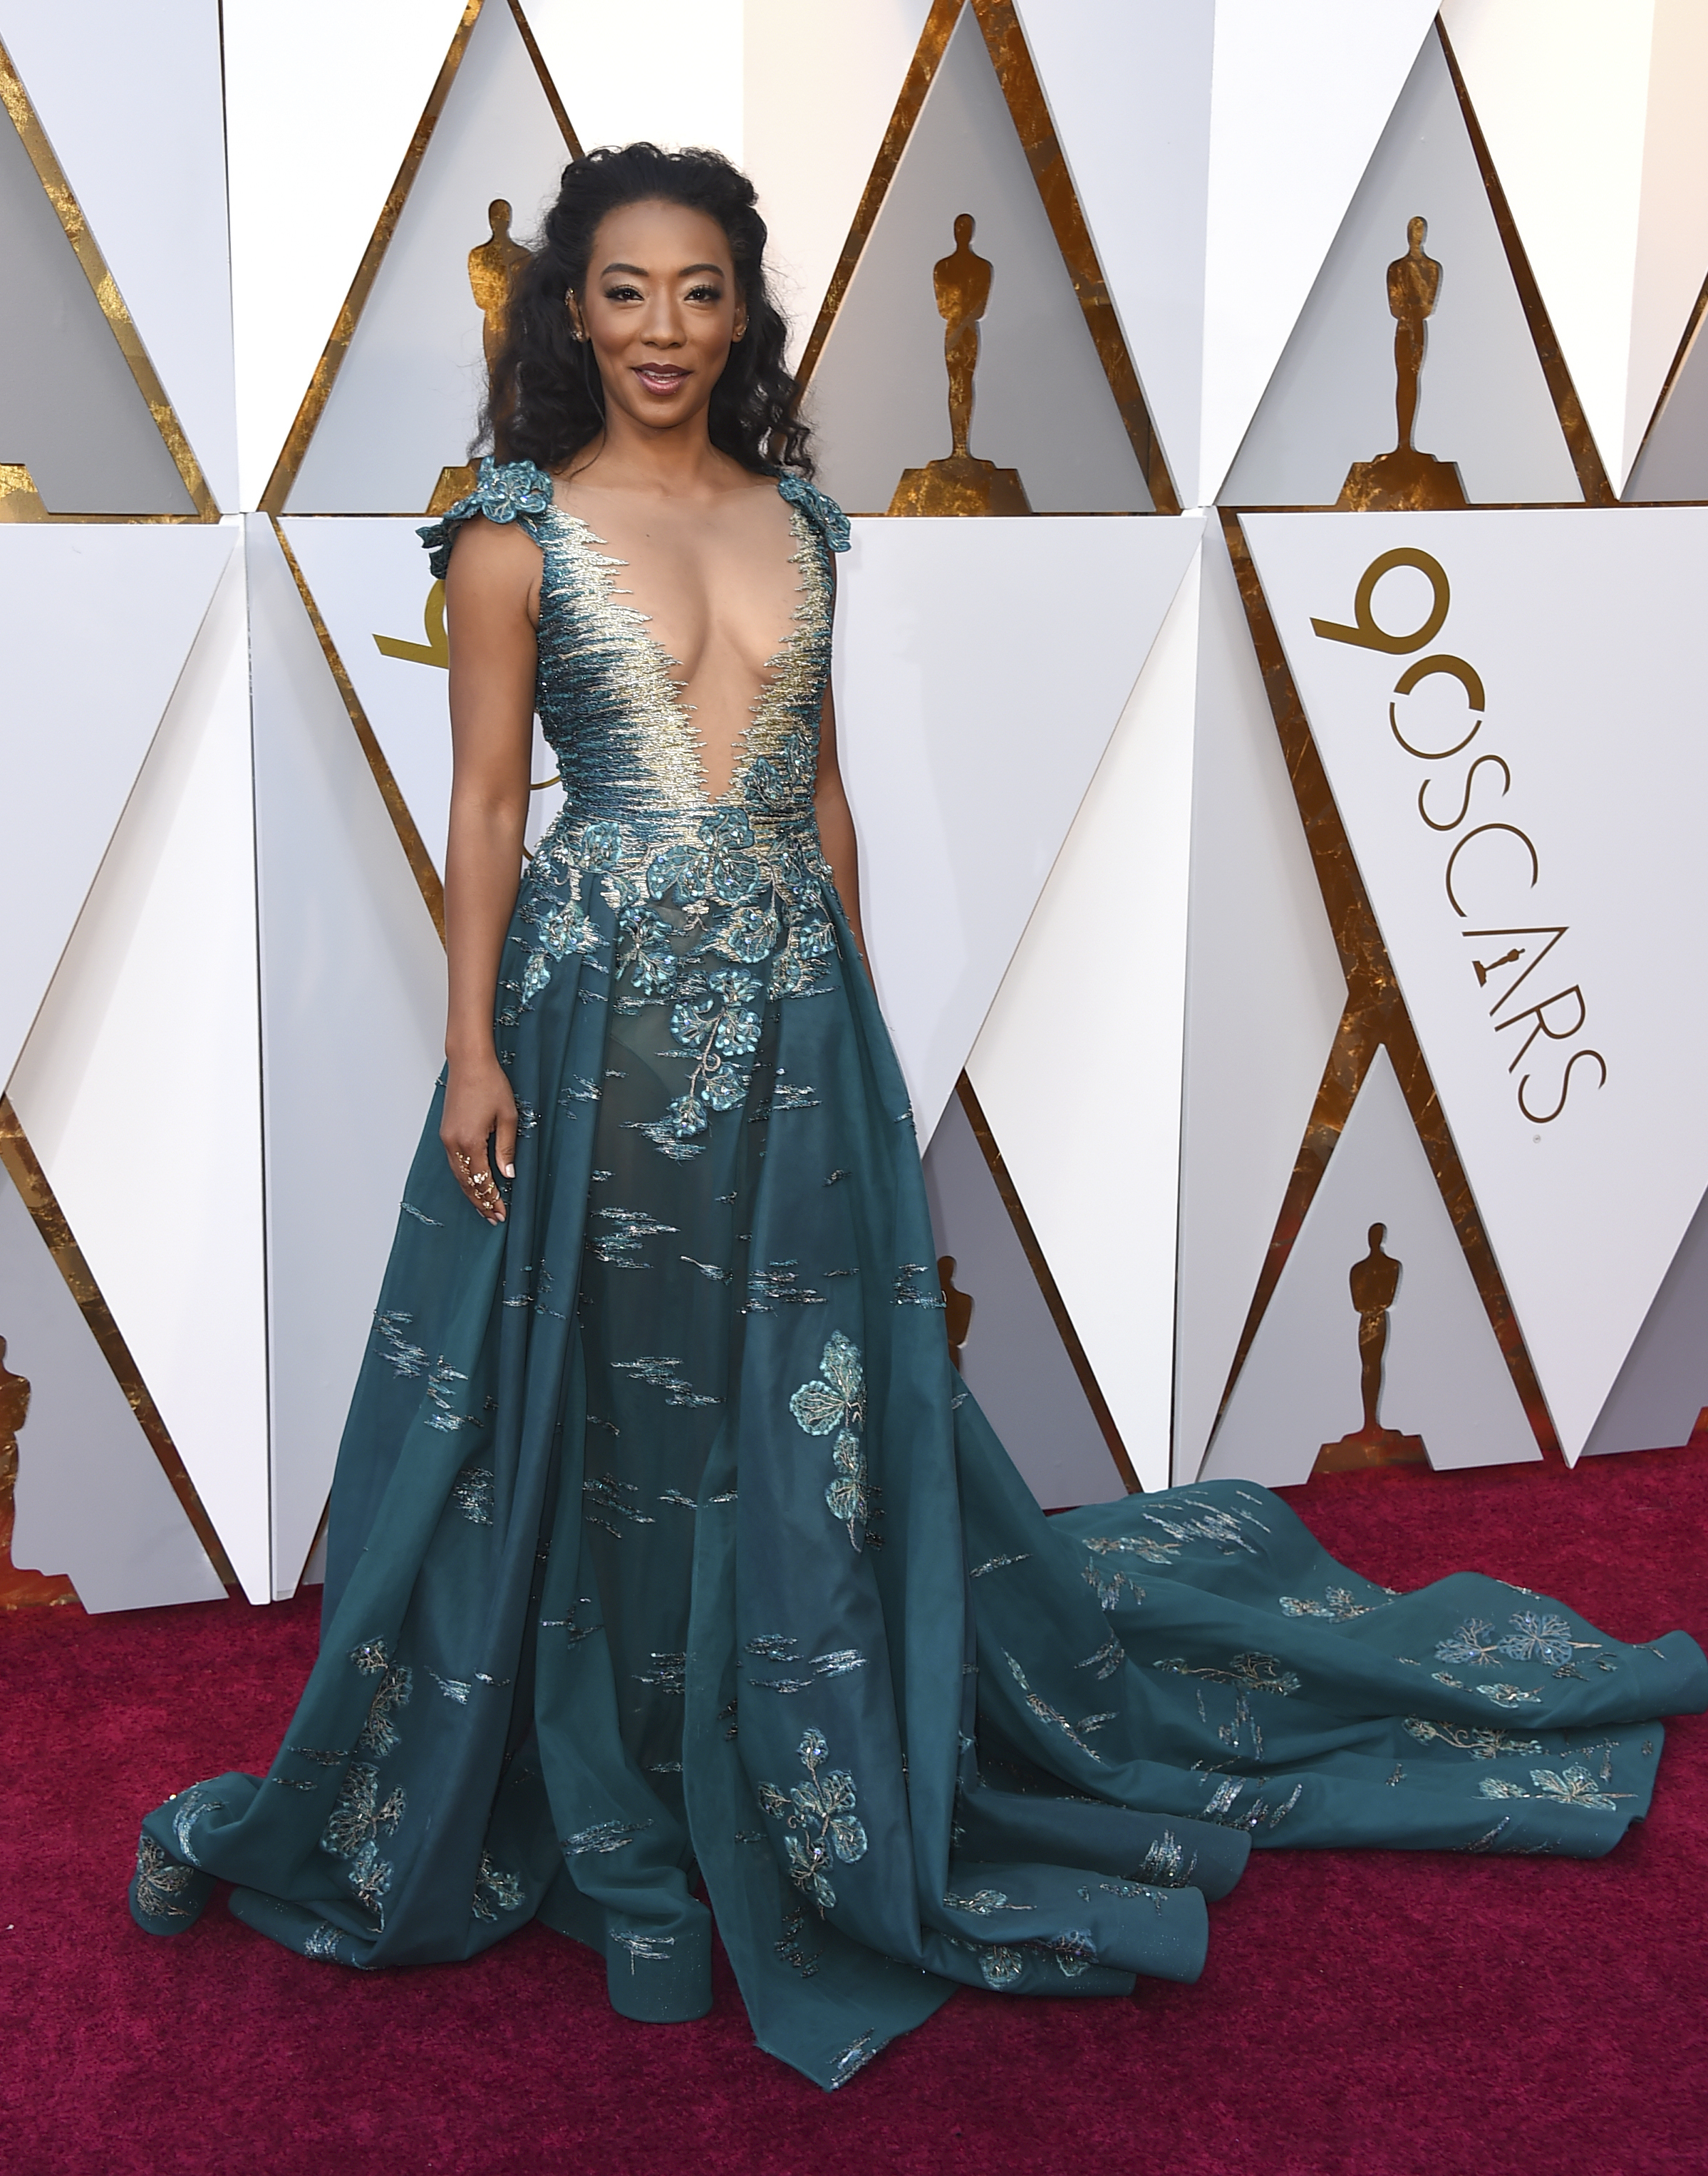 <div class='meta'><div class='origin-logo' data-origin='none'></div><span class='caption-text' data-credit='Jordan Strauss/Invision/AP'>Betty Gabriel of ''Get Out'' arrives at the Oscars on Sunday, March 4, 2018, at the Dolby Theatre in Los Angeles.</span></div>